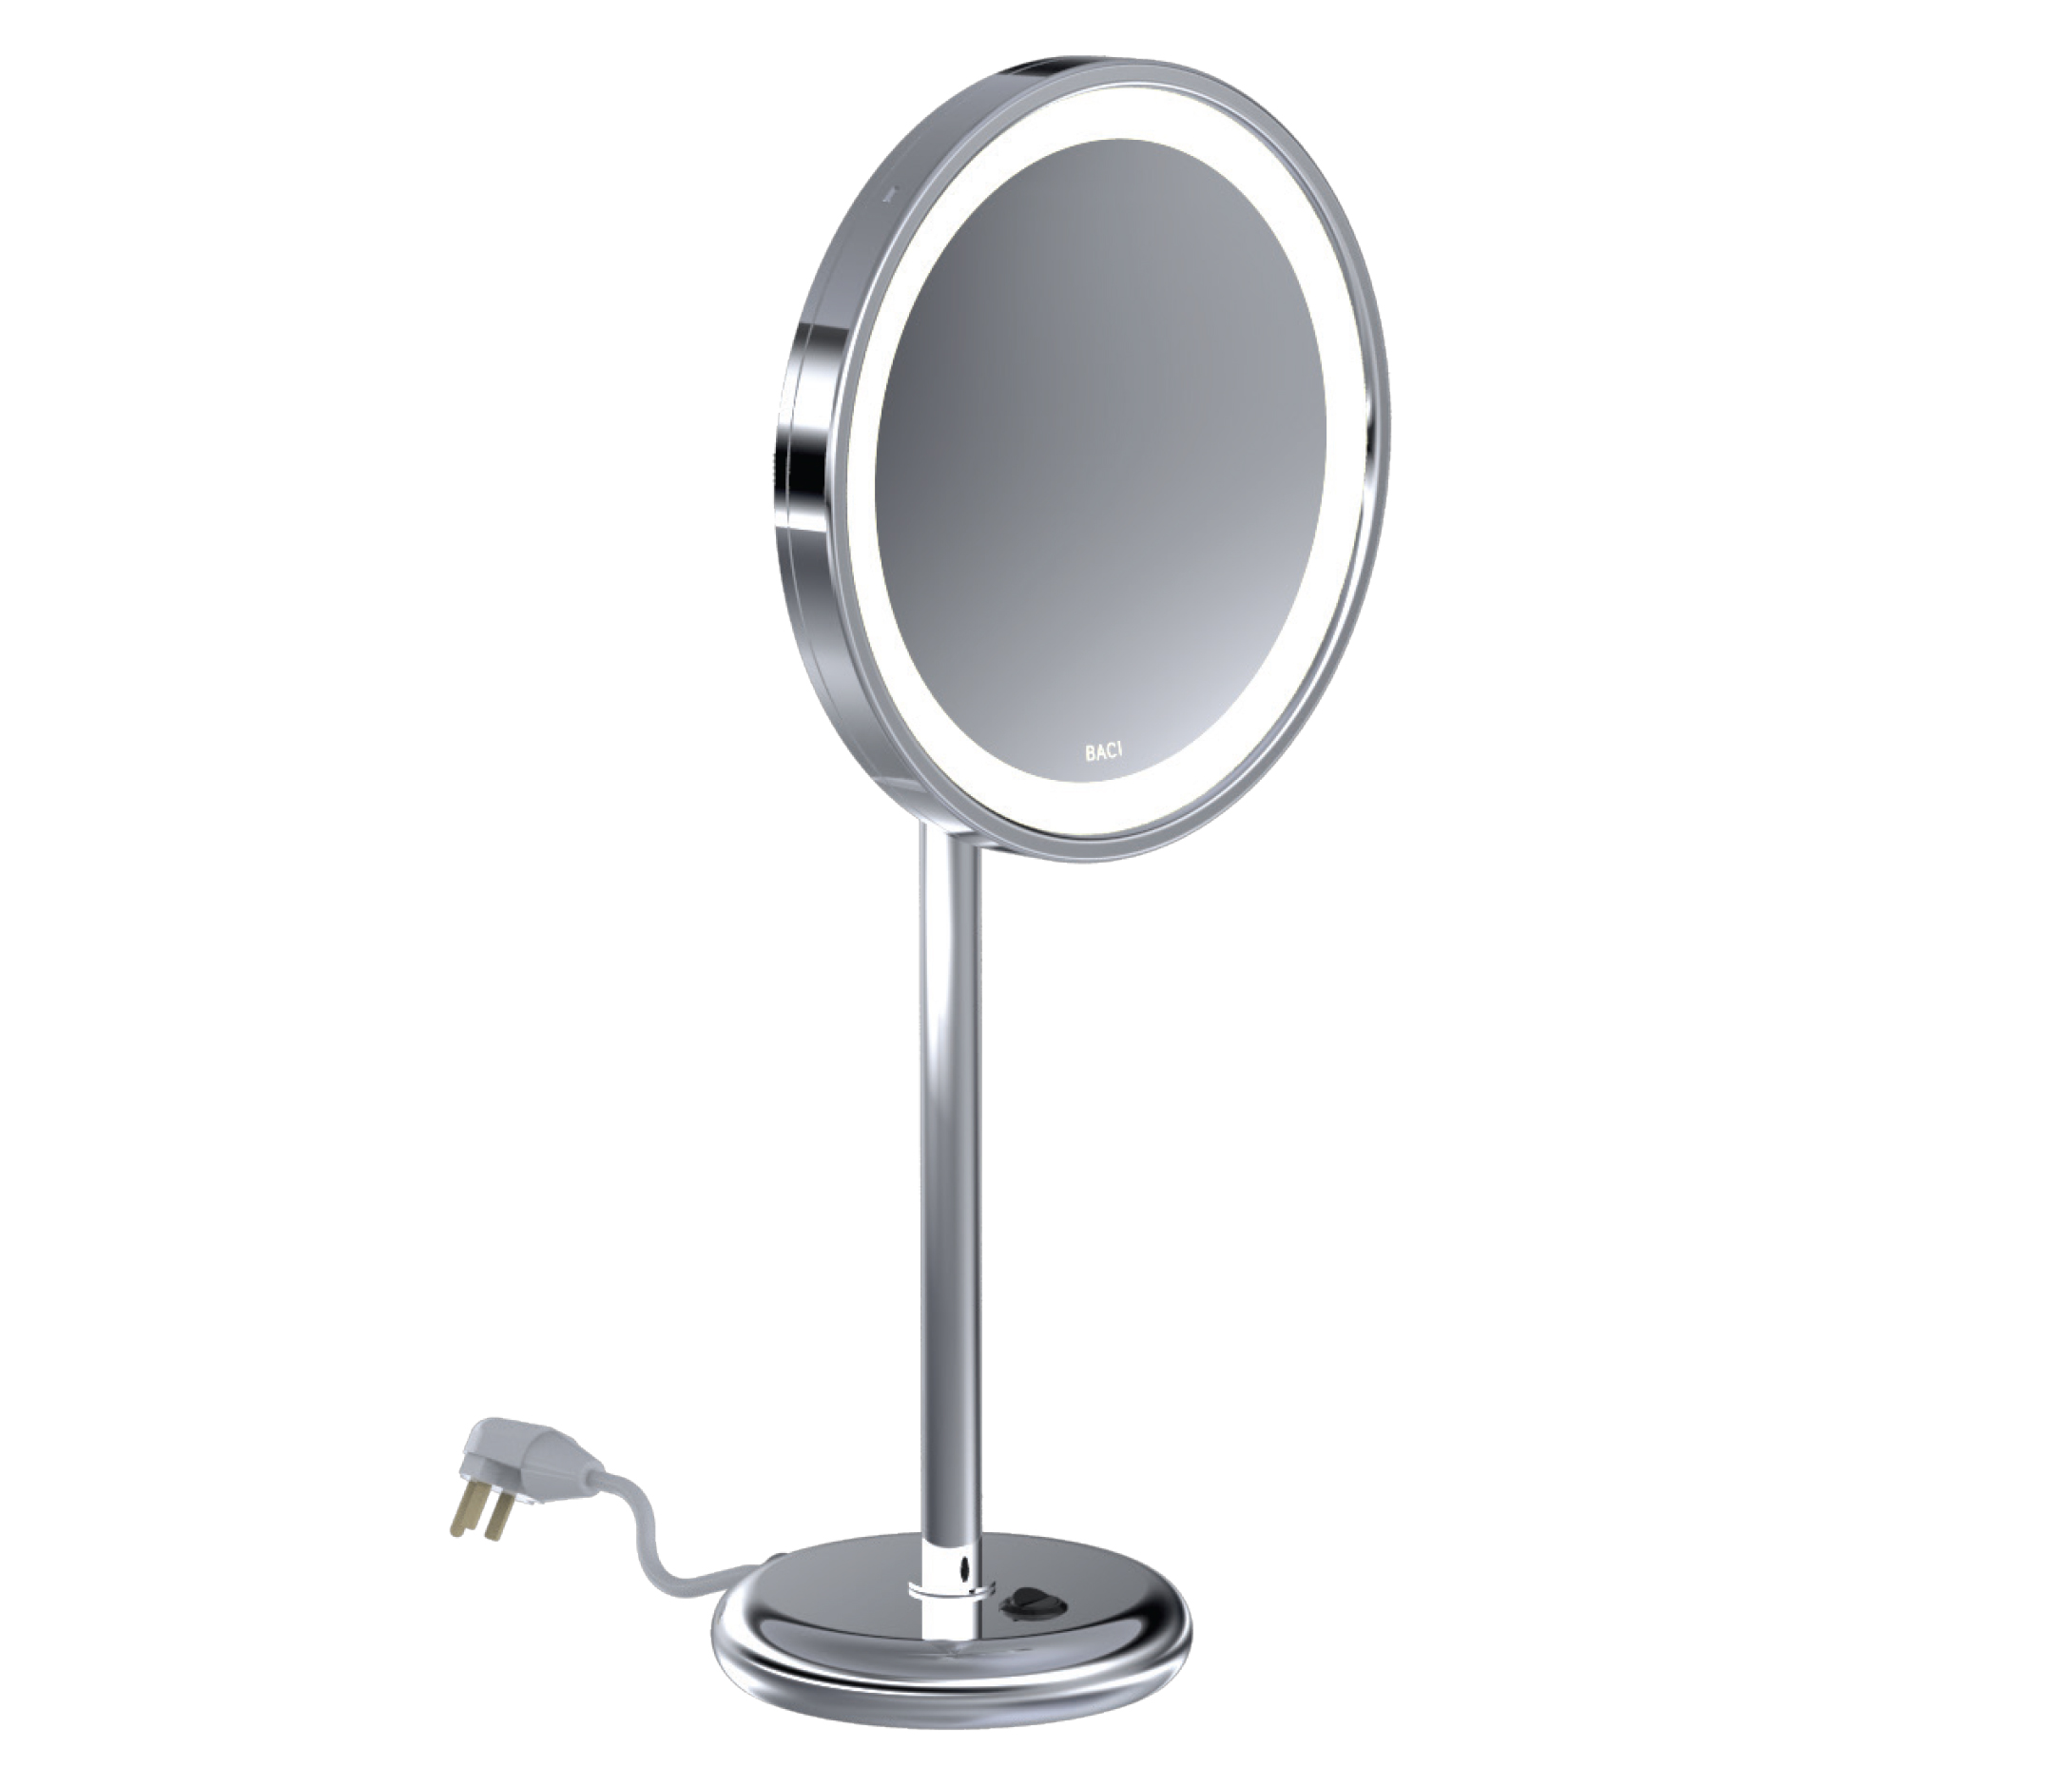 This Clic Tall Countertop Led Mirror Features A Large Round Base For Use On Any Dressing Table The Head Swivels Left To Right And Tilts Up